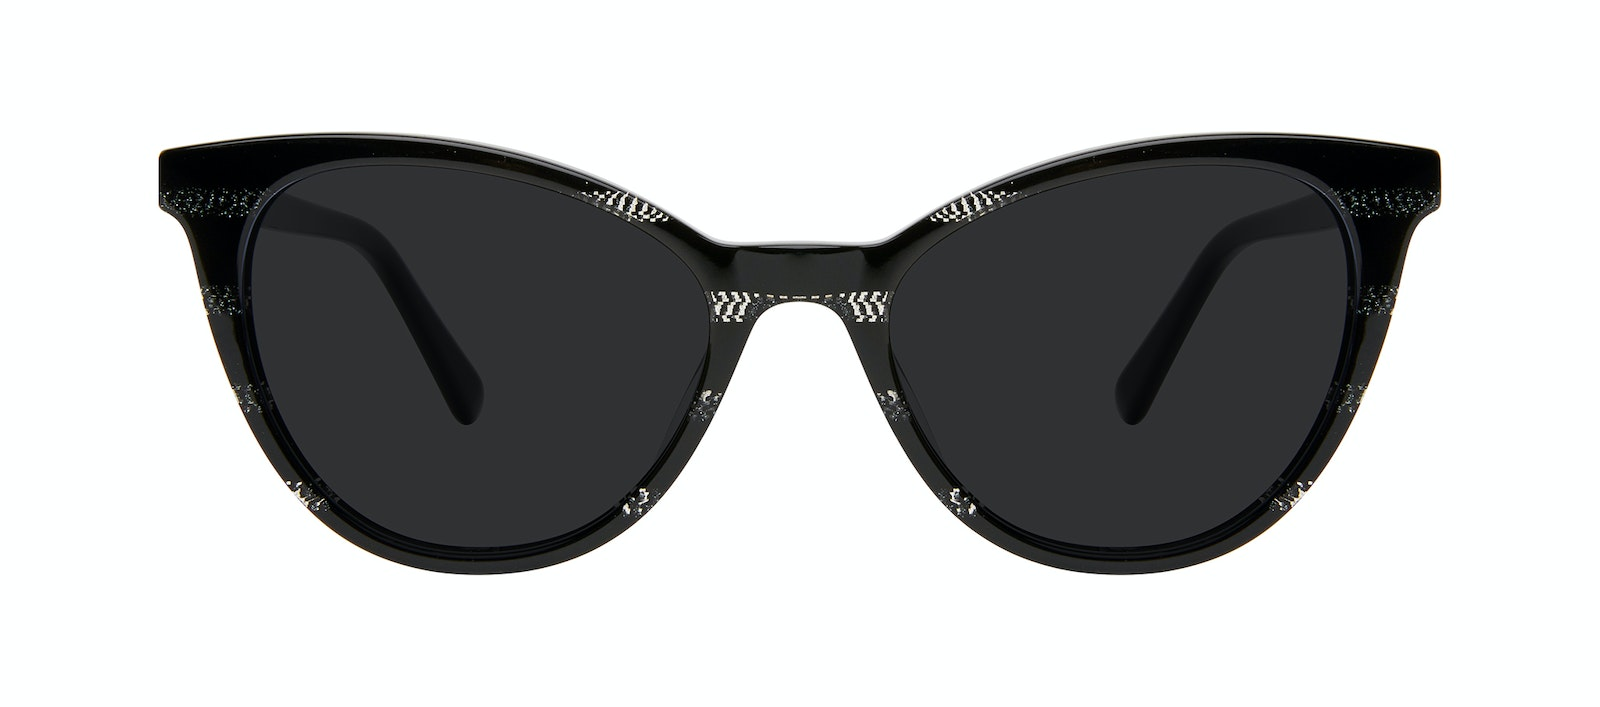 Affordable Fashion Glasses Cat Eye Sunglasses Women Victoire Night Front